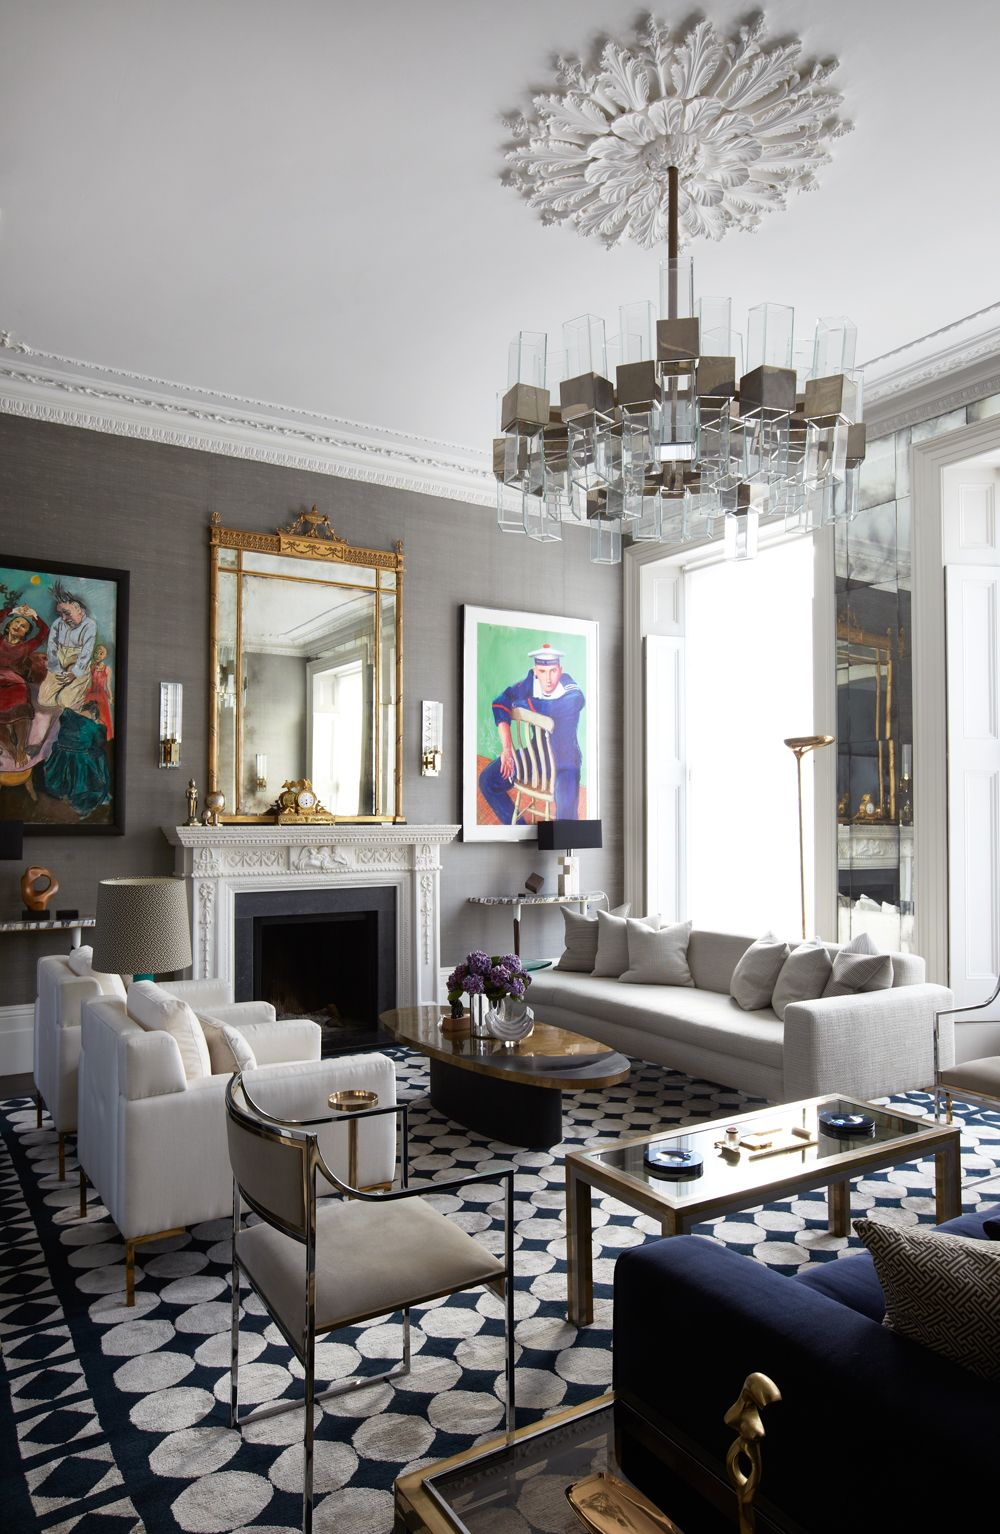 Living Room Ceiling Colors The Set The Shoot Cate Blanchett For Vogue Us The Chandelier